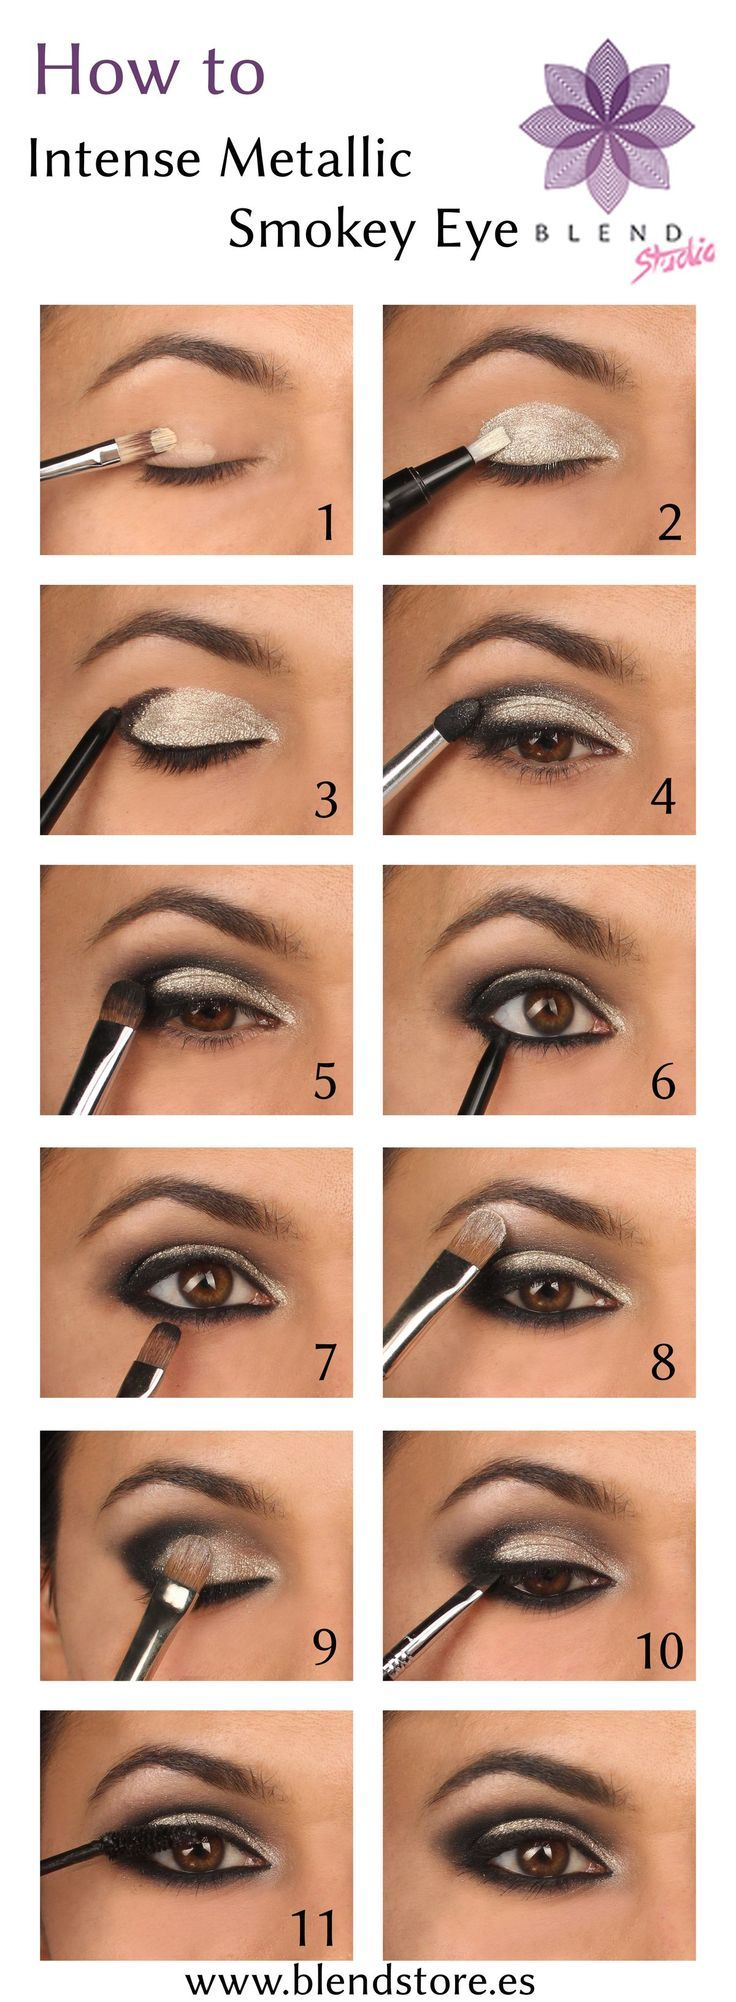 metallic smokey eye  - for more beauty, makeup, and nail art ideas, visit www.sparkofallure.com